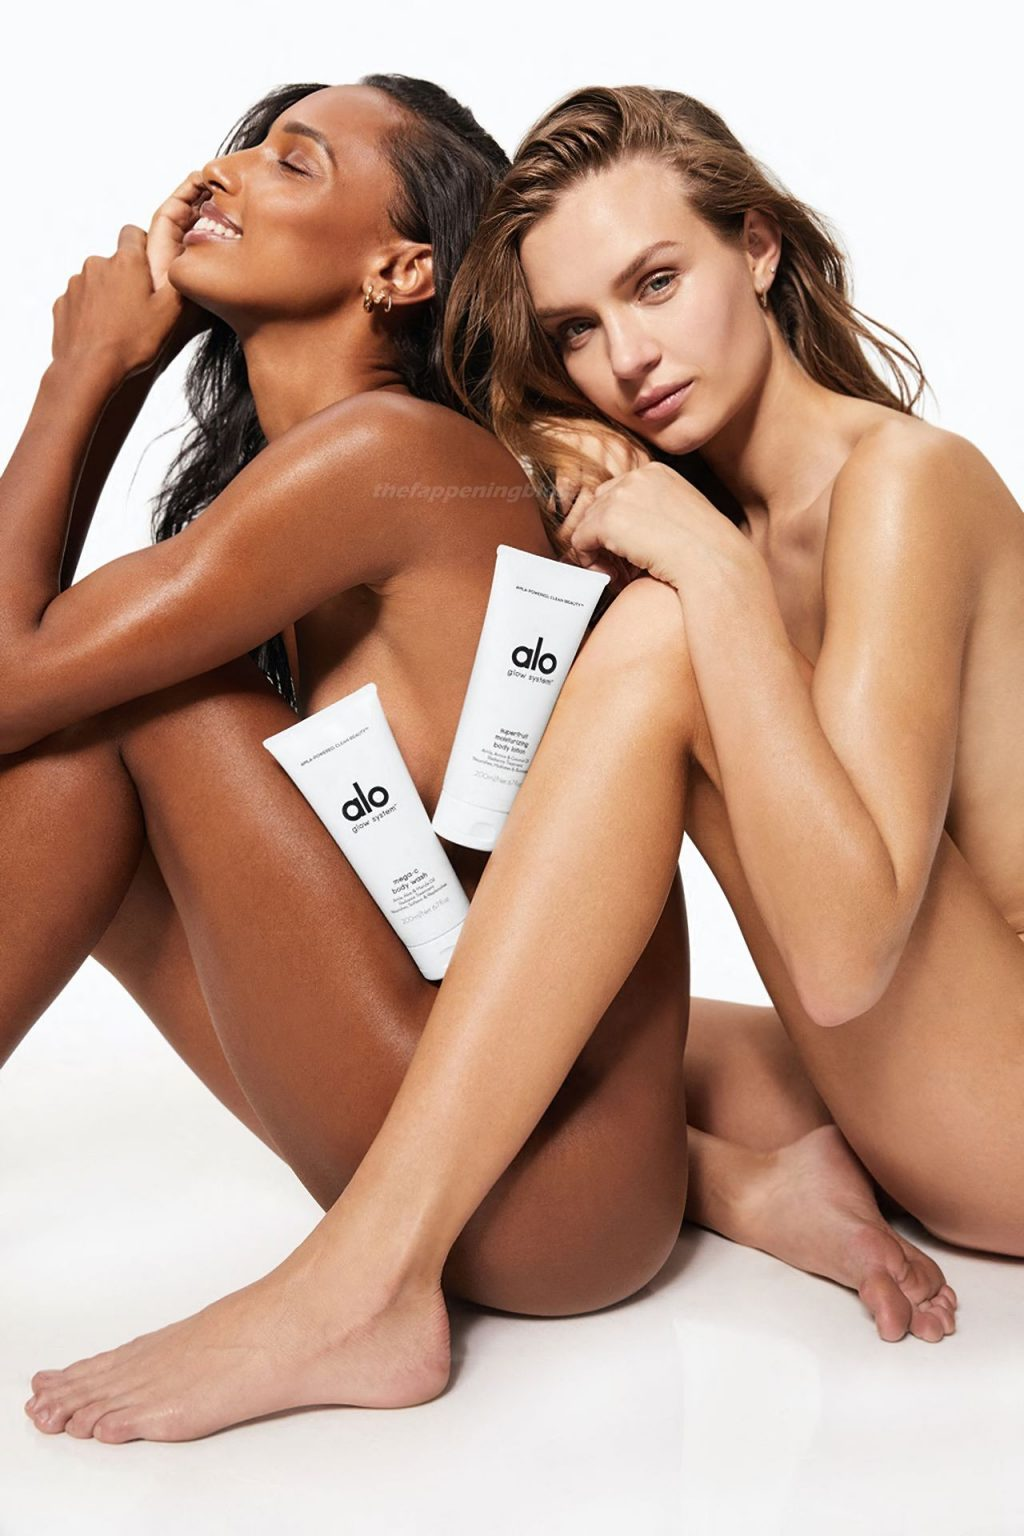 Josephine Skriver & Jasmine Tookes Pose Naked for a New Campaign (8 Photos)